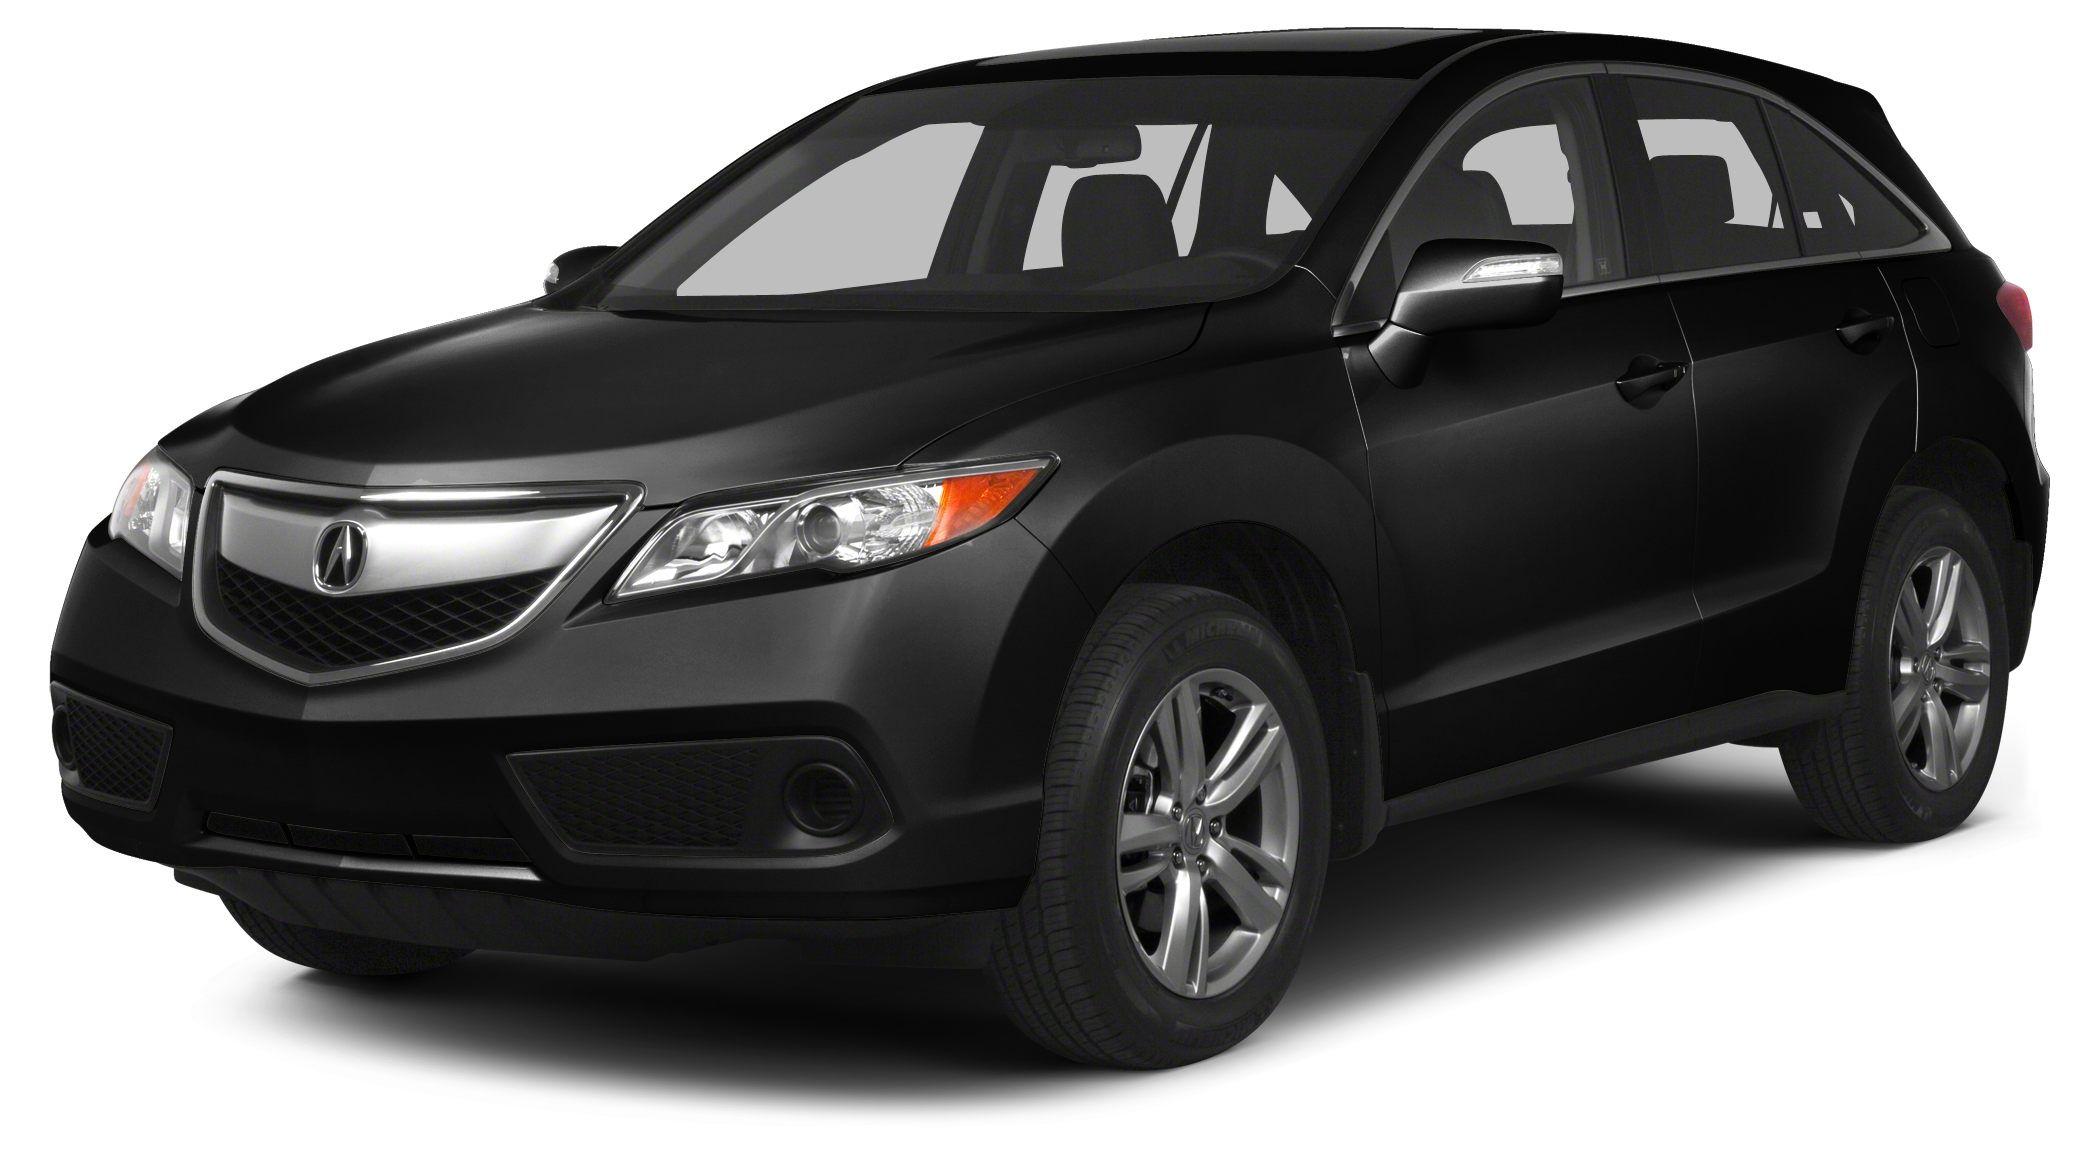 2013 Acura RDX Base New Arrival This 2013 Acura RDX BASE will sell fast -Backup Camera -Leather